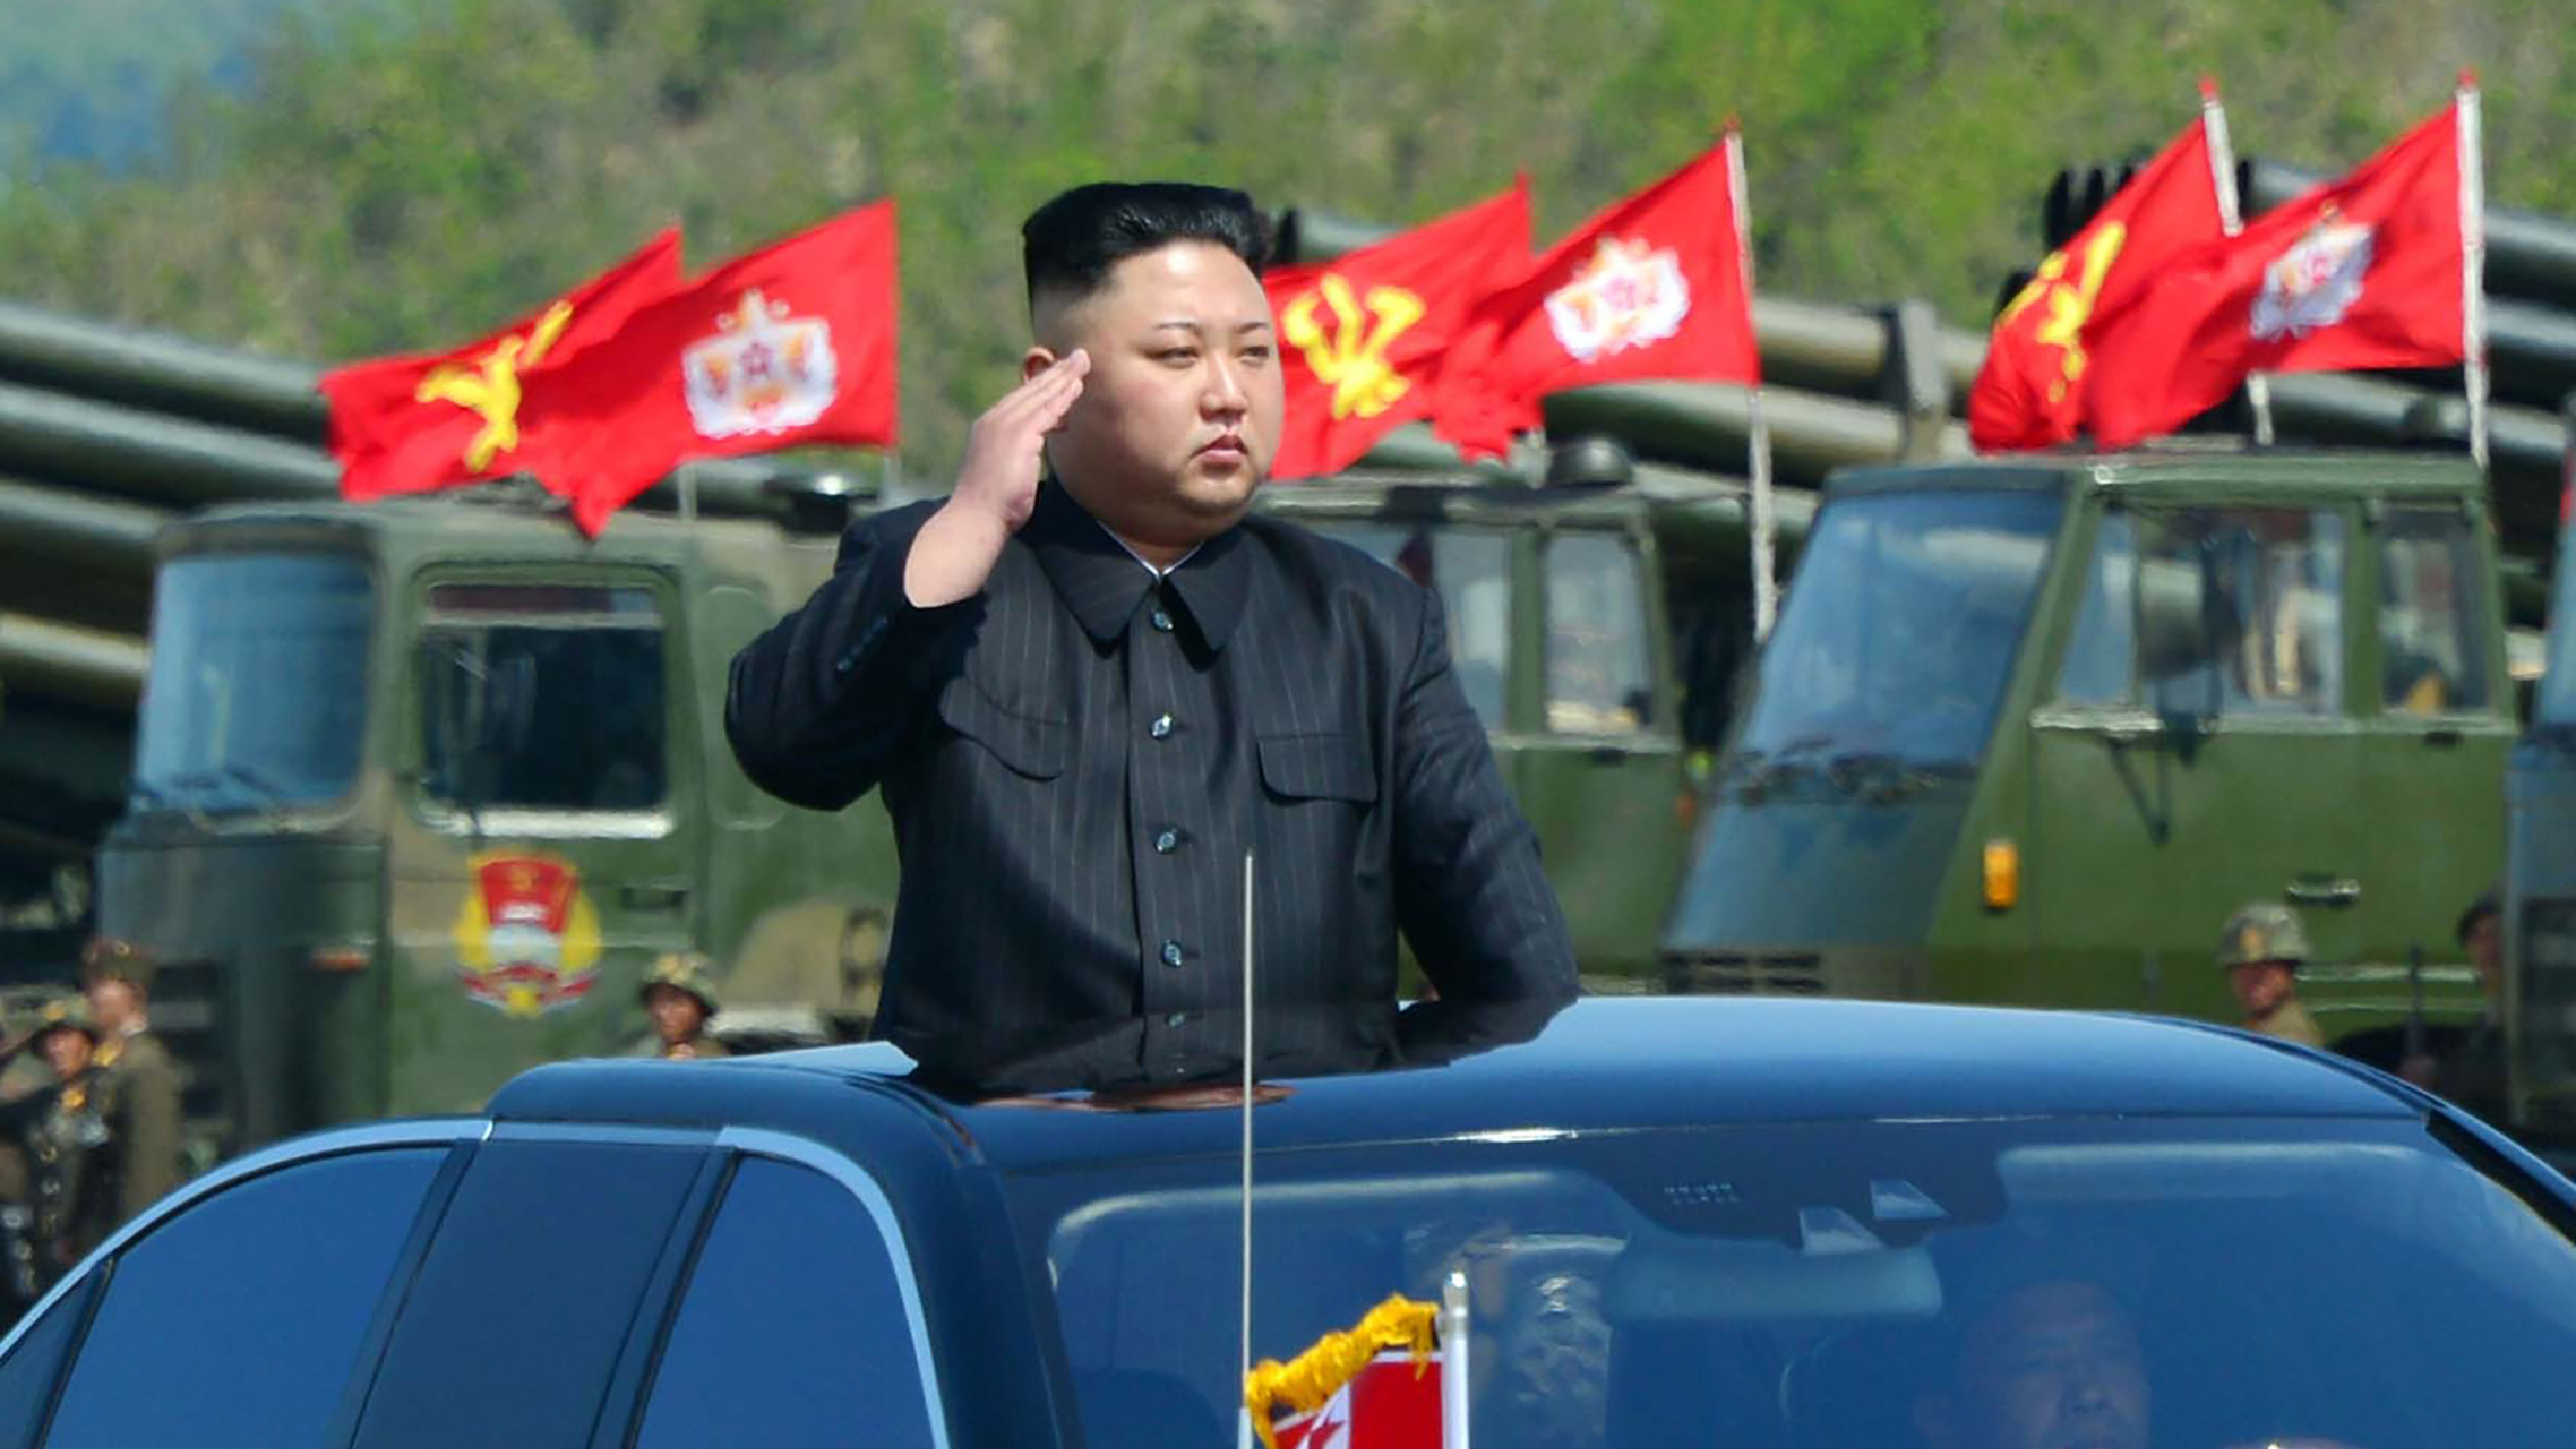 North Korean leader Kim Jong Un attends the combined fire demonstration of the services of the Korean People